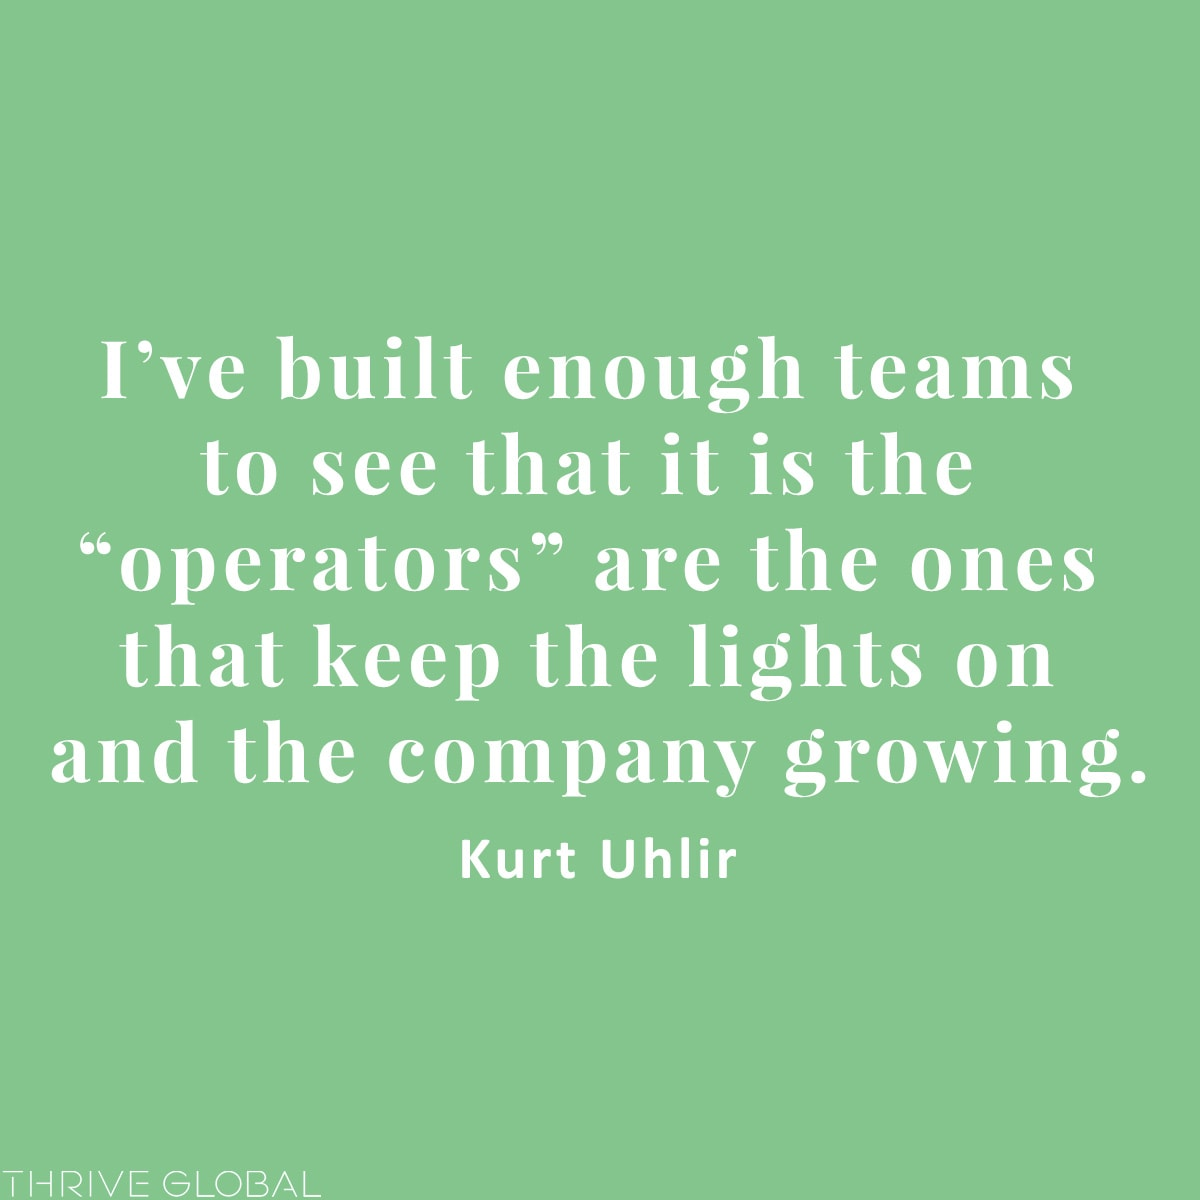 "I've built enough teams to see that it is the ""operators"" are the ones that keep the lights on and the company growing."